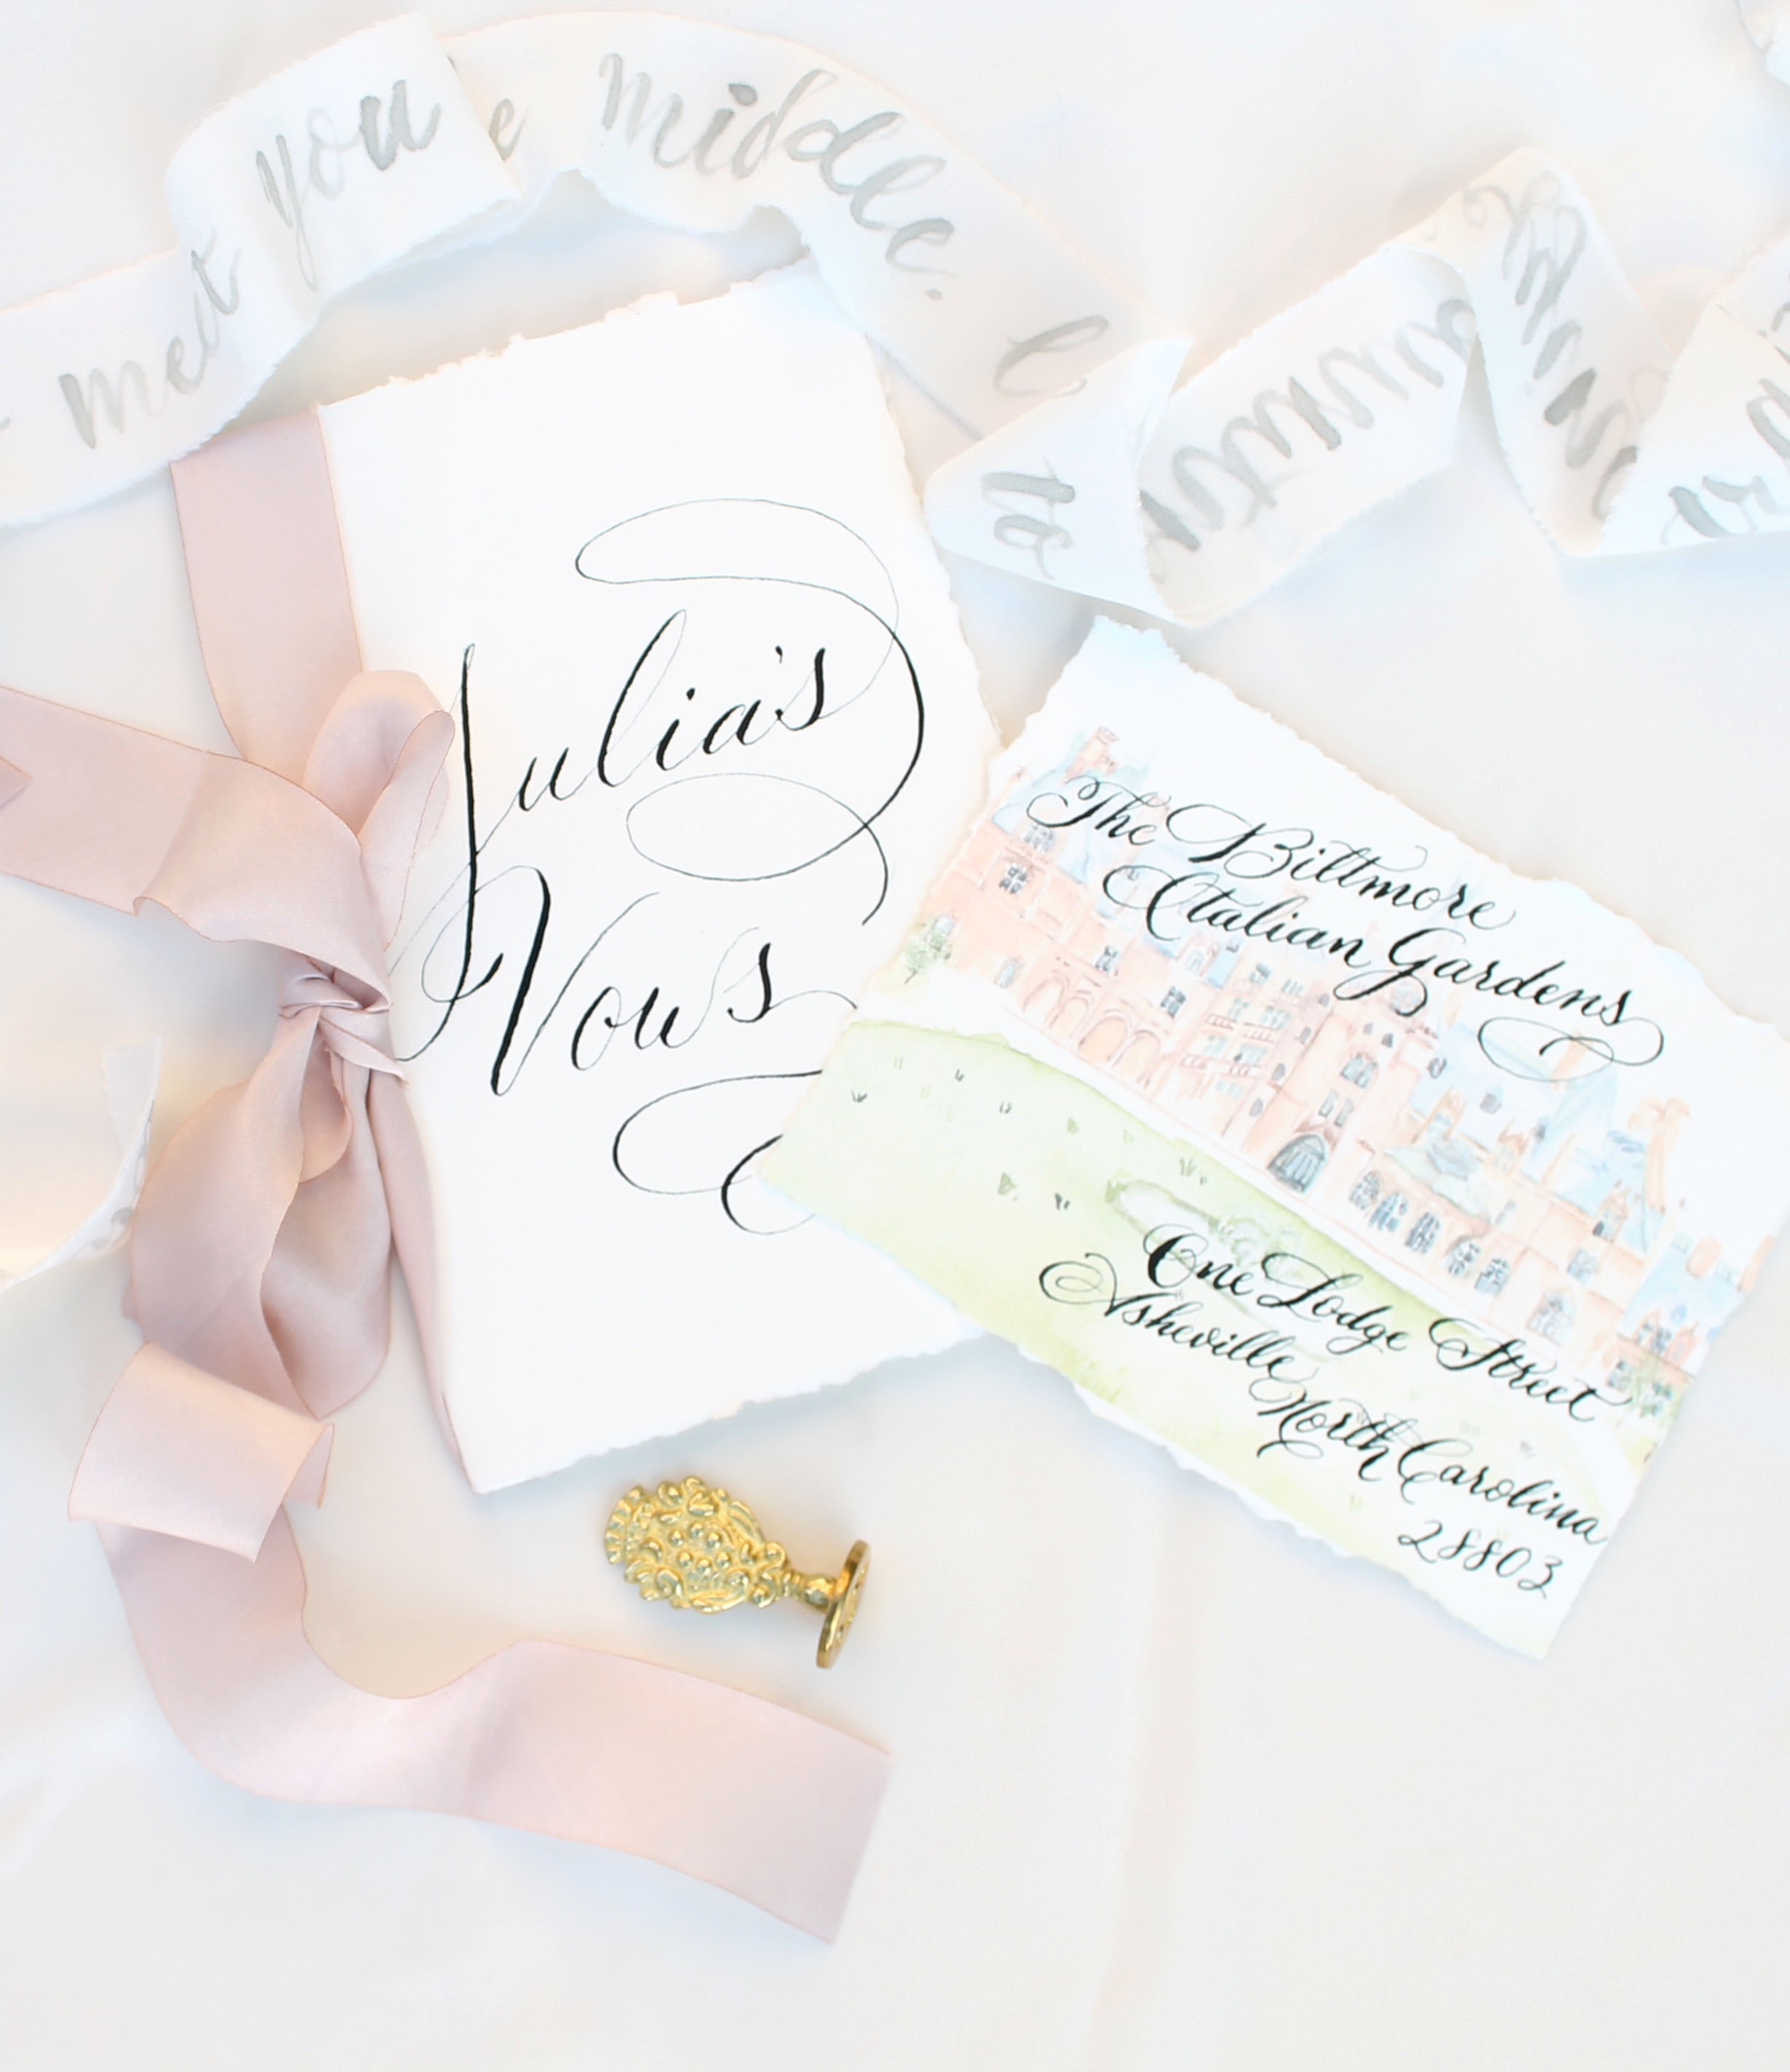 Vow book design Biltmore Wedding invitation design North Carolina